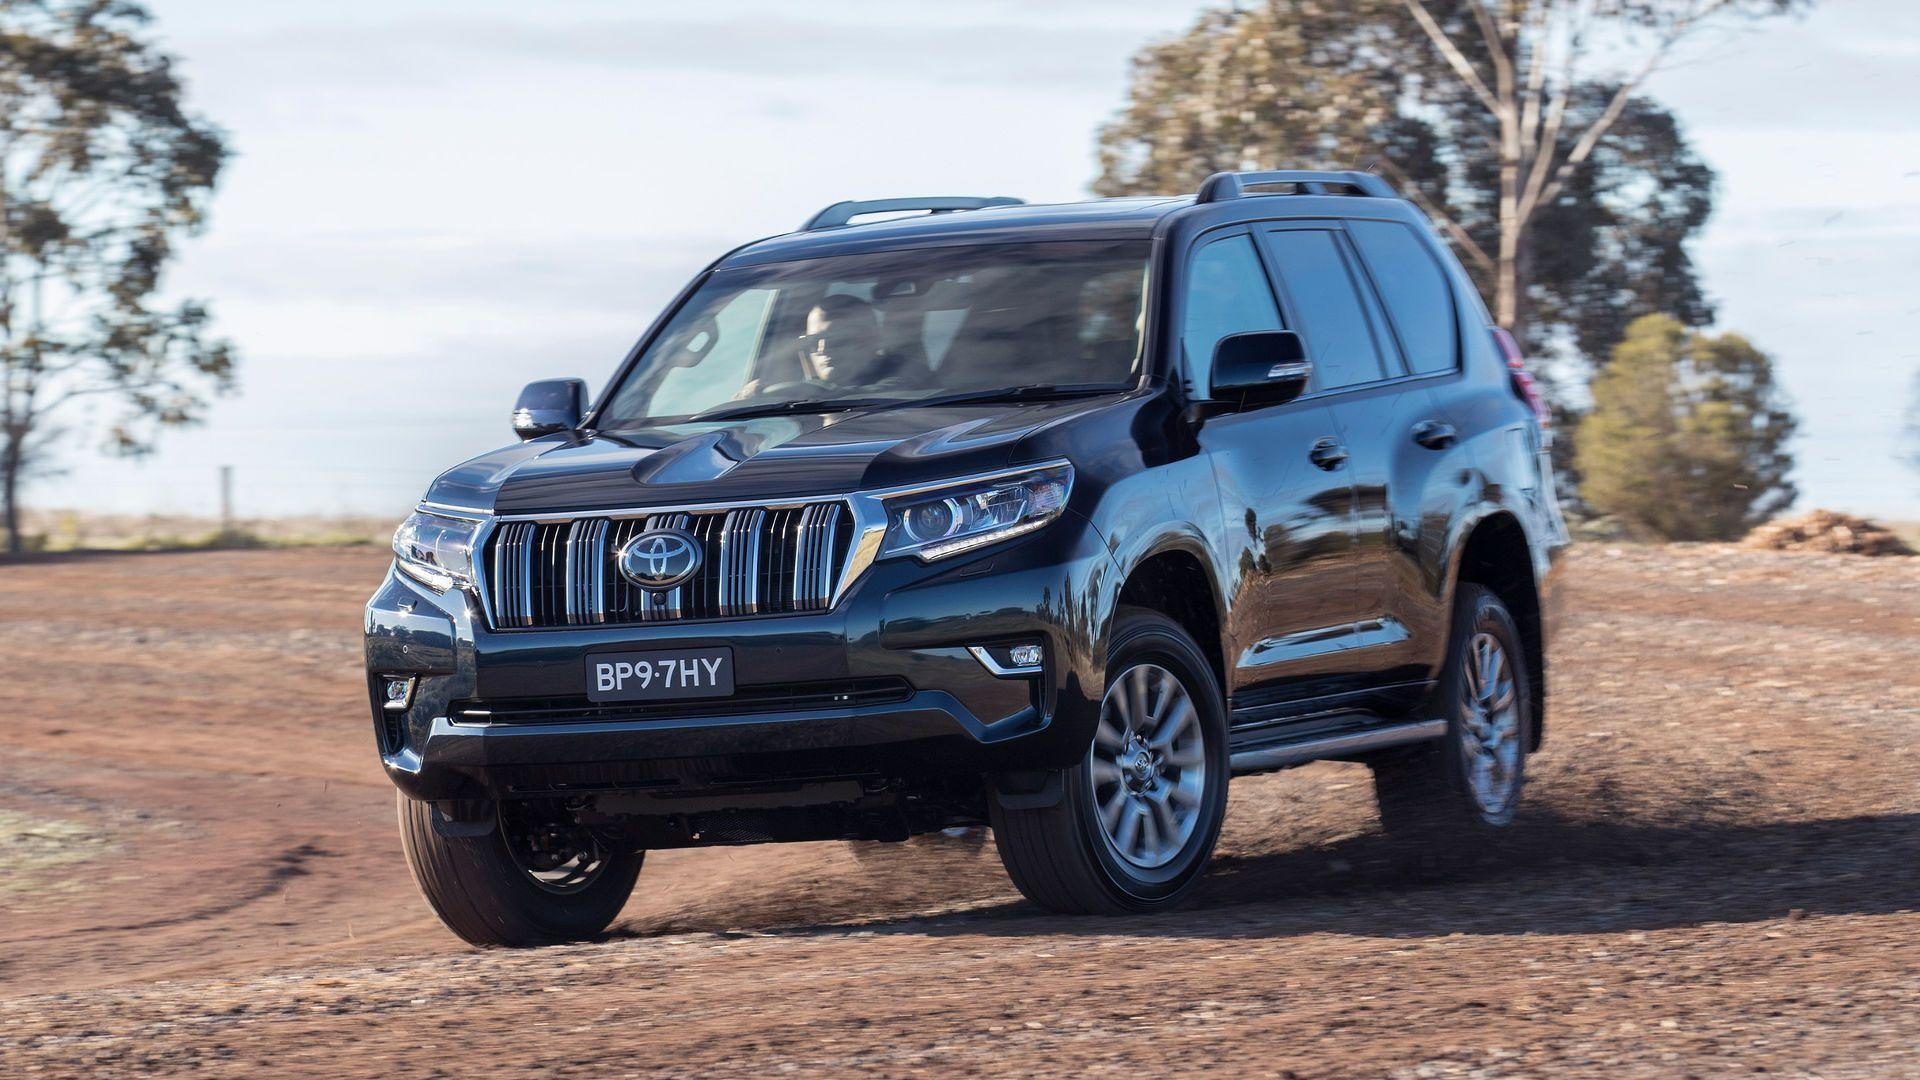 2018-toyota-land-cruiser-australia-official-image